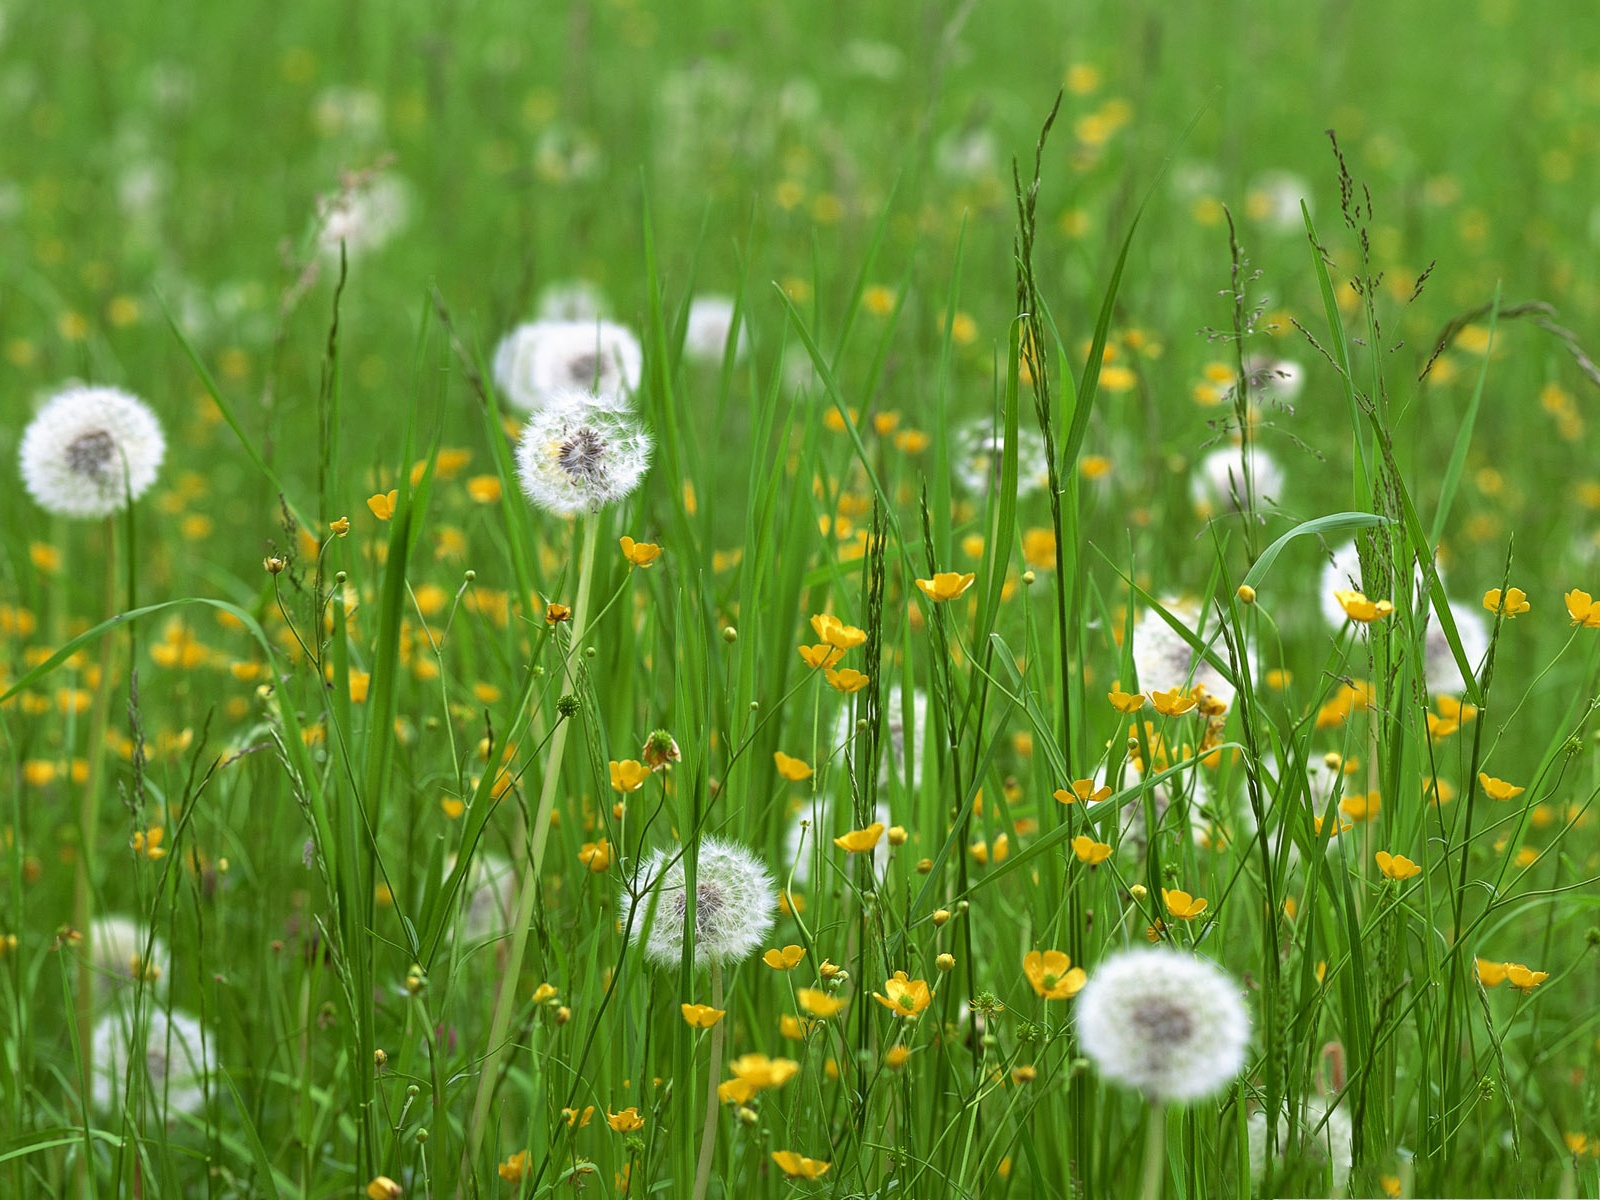 White flowers in grass 20 free wallpaper hdflowerwallpaper white flowers in grass free wallpaper mightylinksfo Choice Image